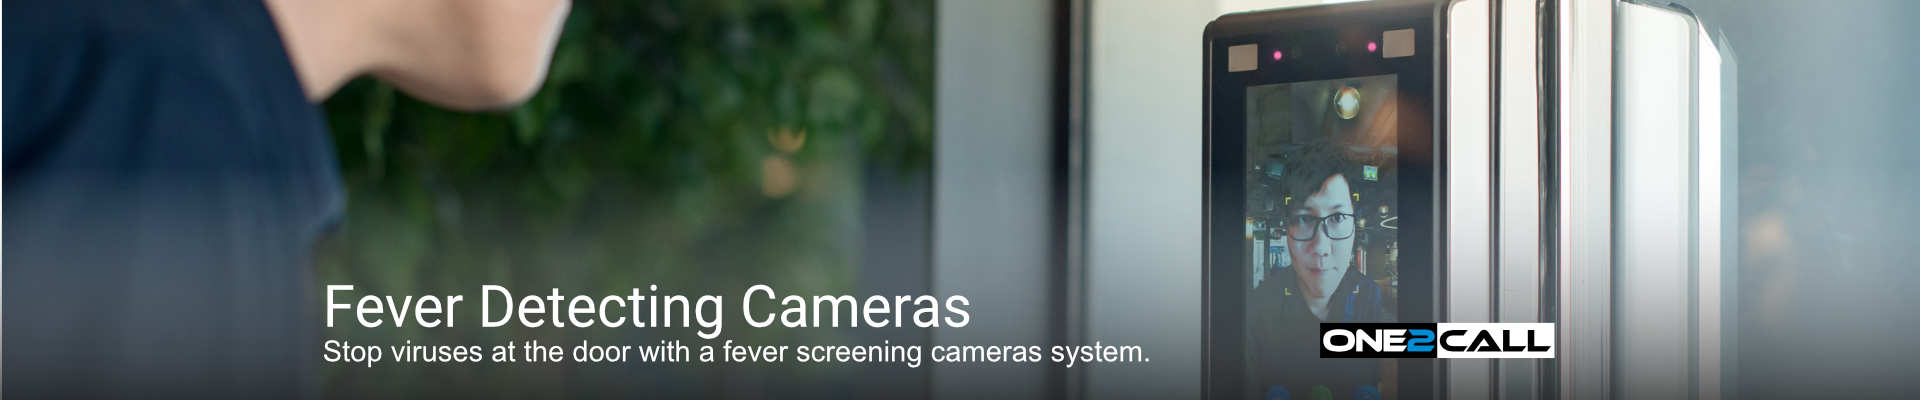 Fever Screening Cameras - Stop viruses at the door with a fever screening cameras system.